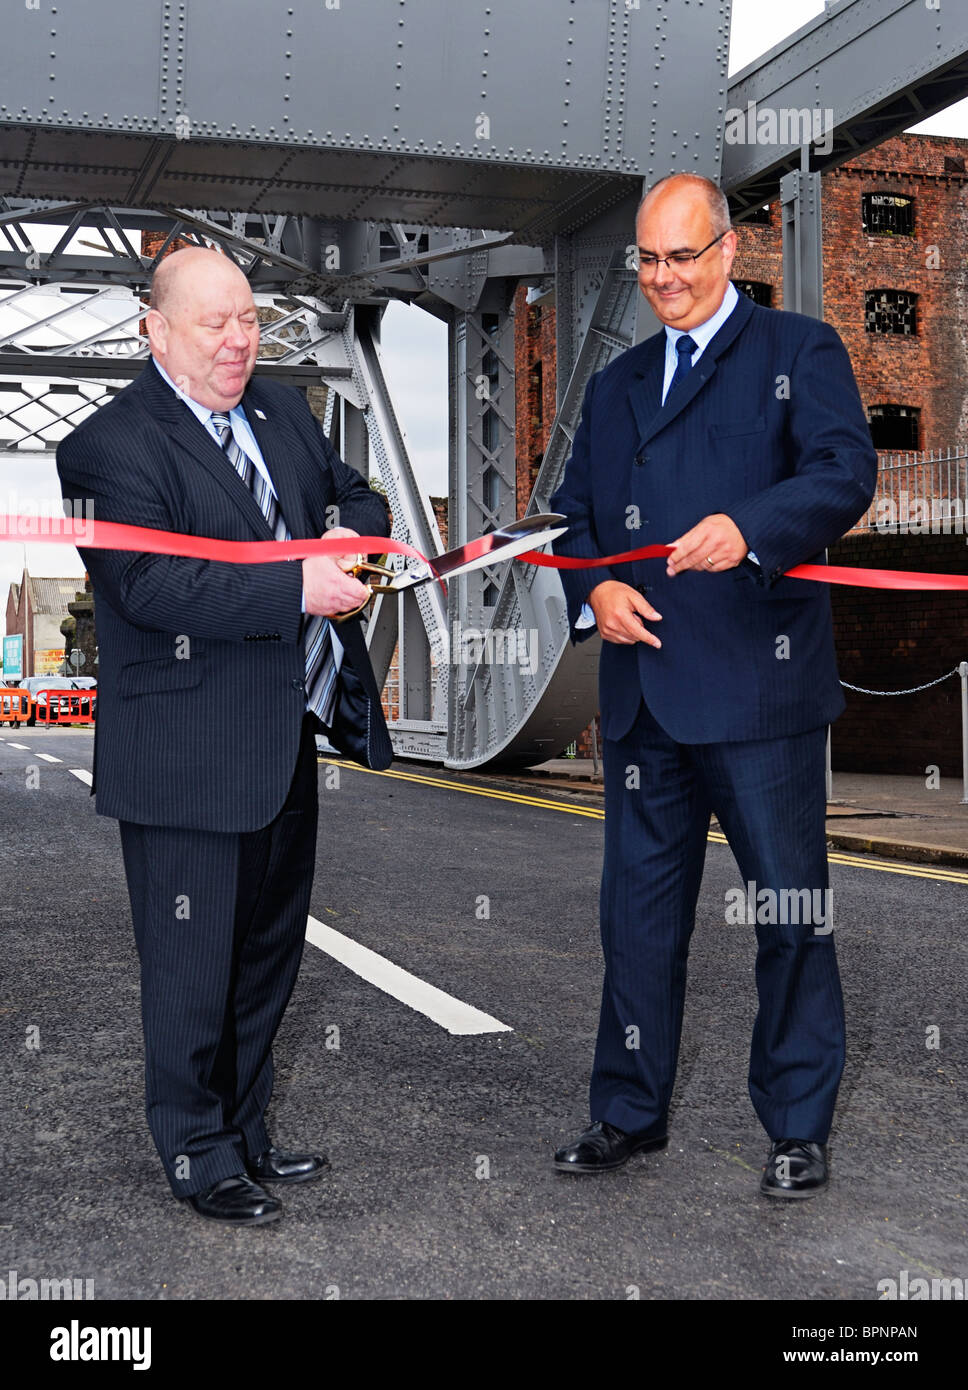 Local councillor Joe Anderson and Ian Porritt cutting the ribbon at the opening ceremony for the Stanley Dock bascule - Stock Image